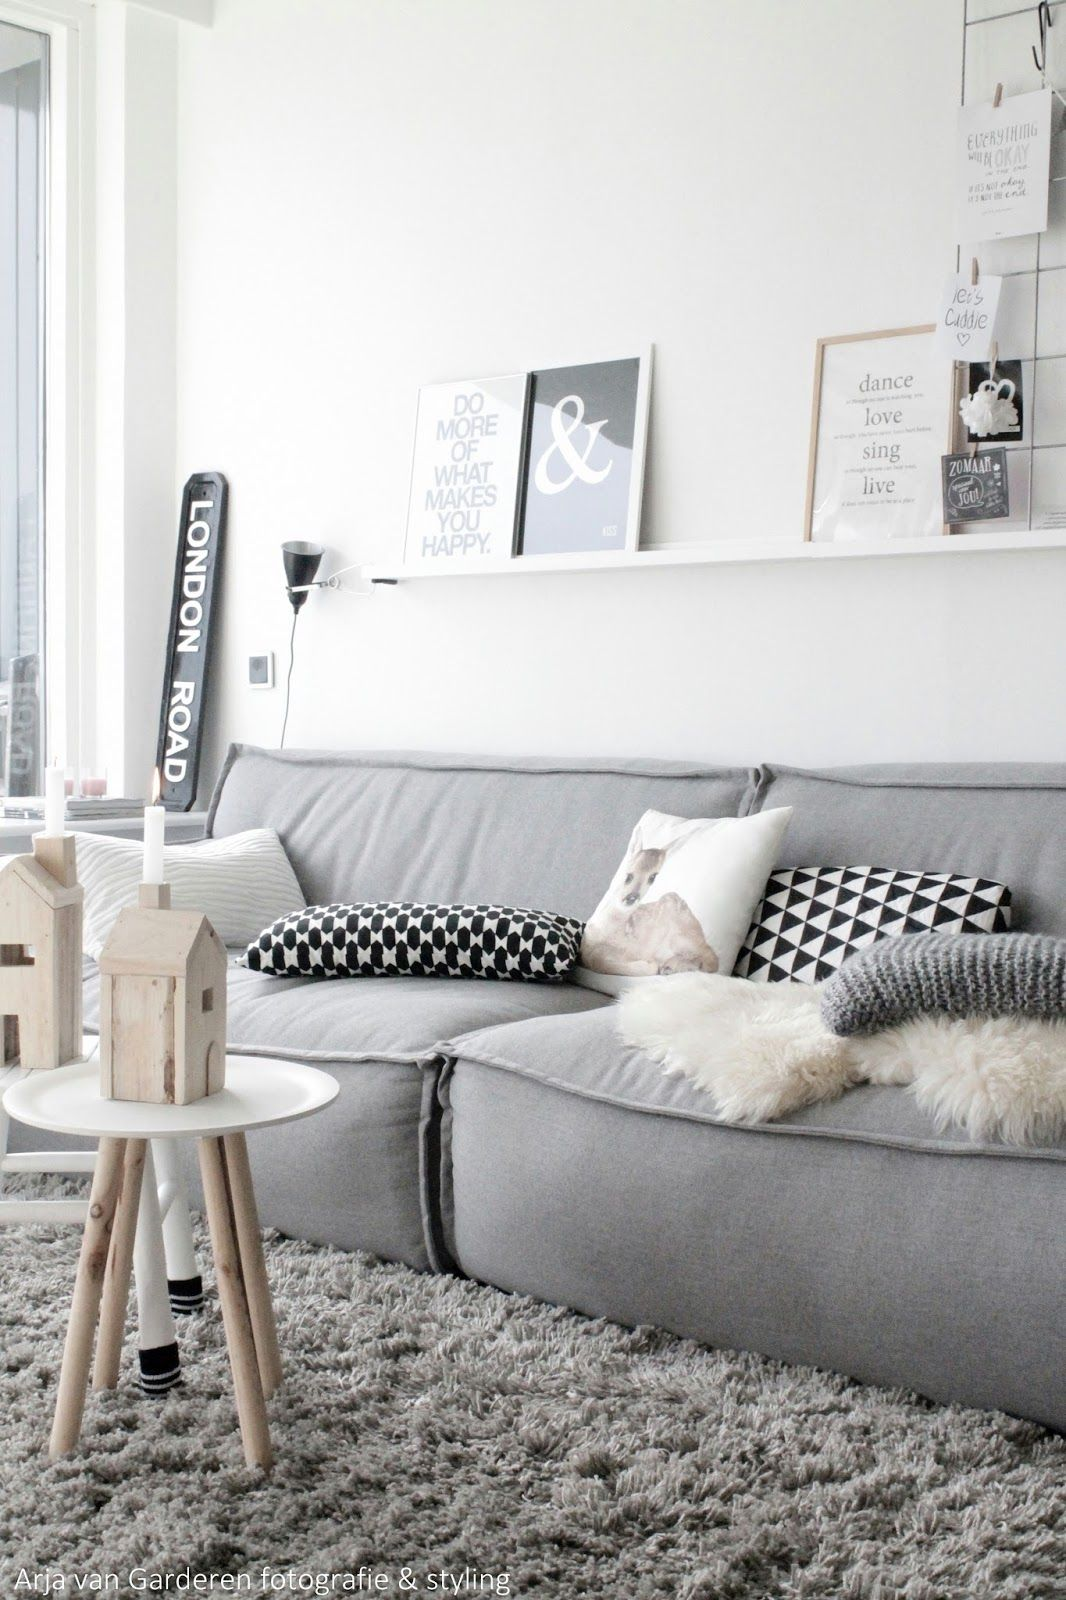 15 Ways to Work a Shag Rug Into Your Home | Cozy, Living rooms and Room